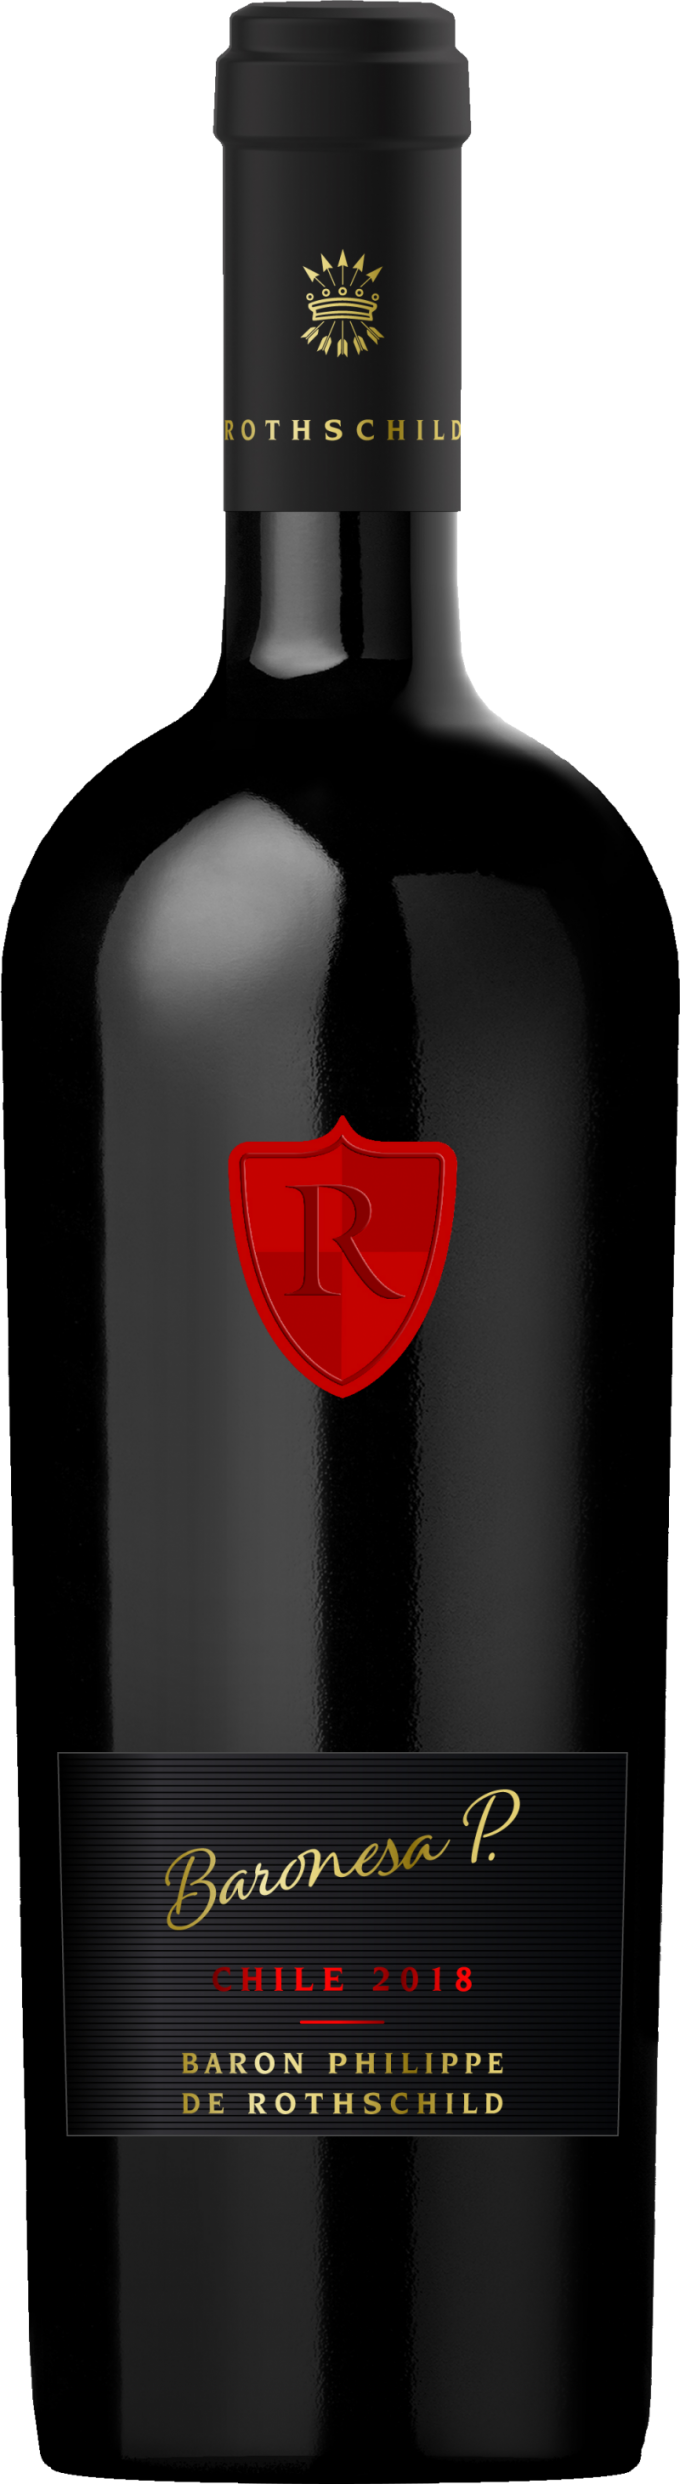 Baron Philippe de Rothschild to release highly-rated limited edition Escudo Rojo Baronesa P. into global travel retail